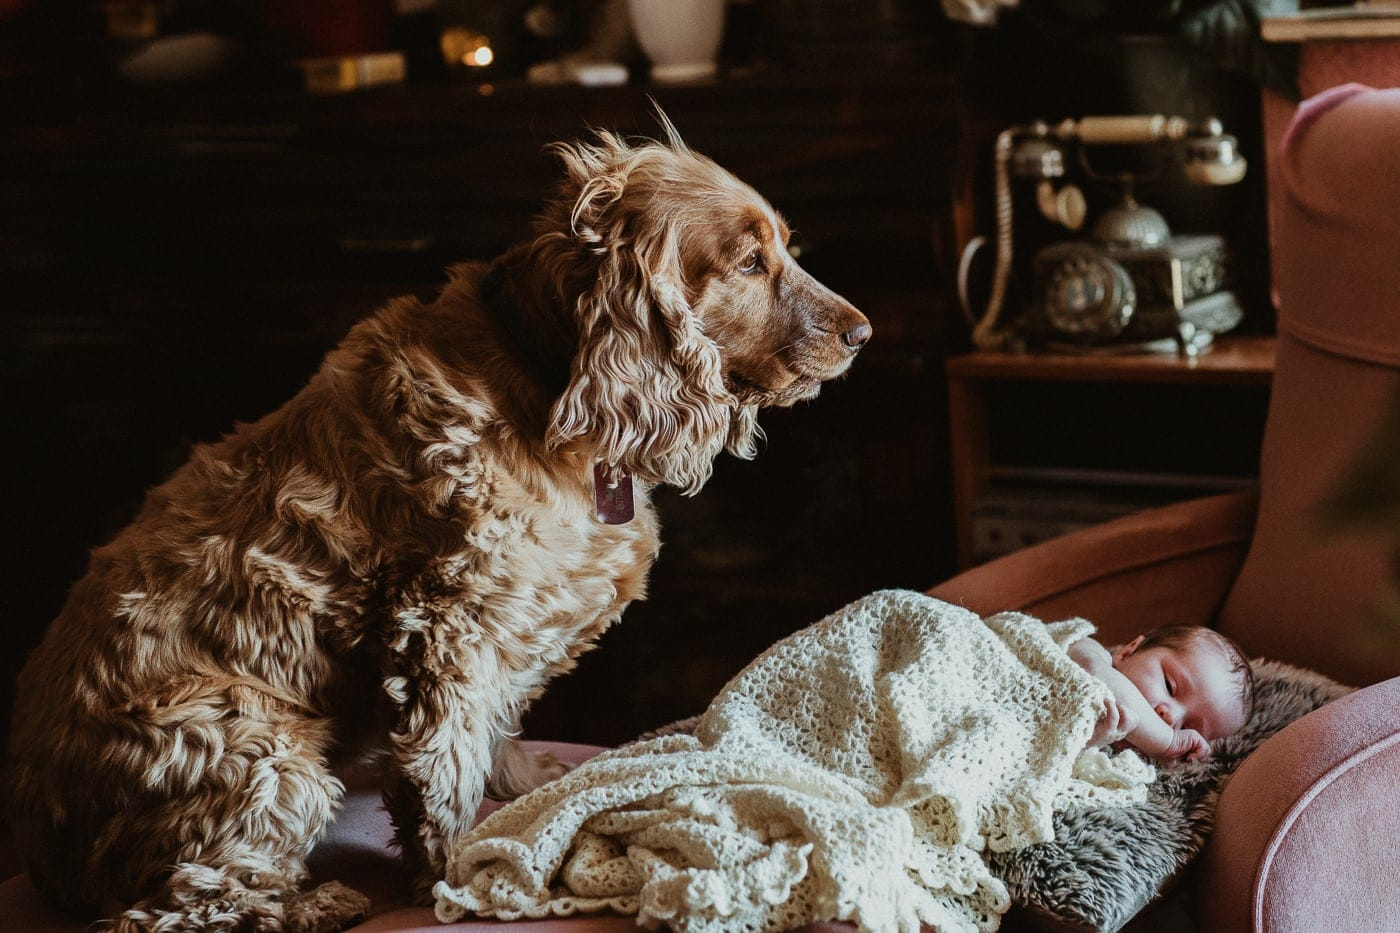 Newborn and Pet Photography in melbourne - Dog watching baby sleeping